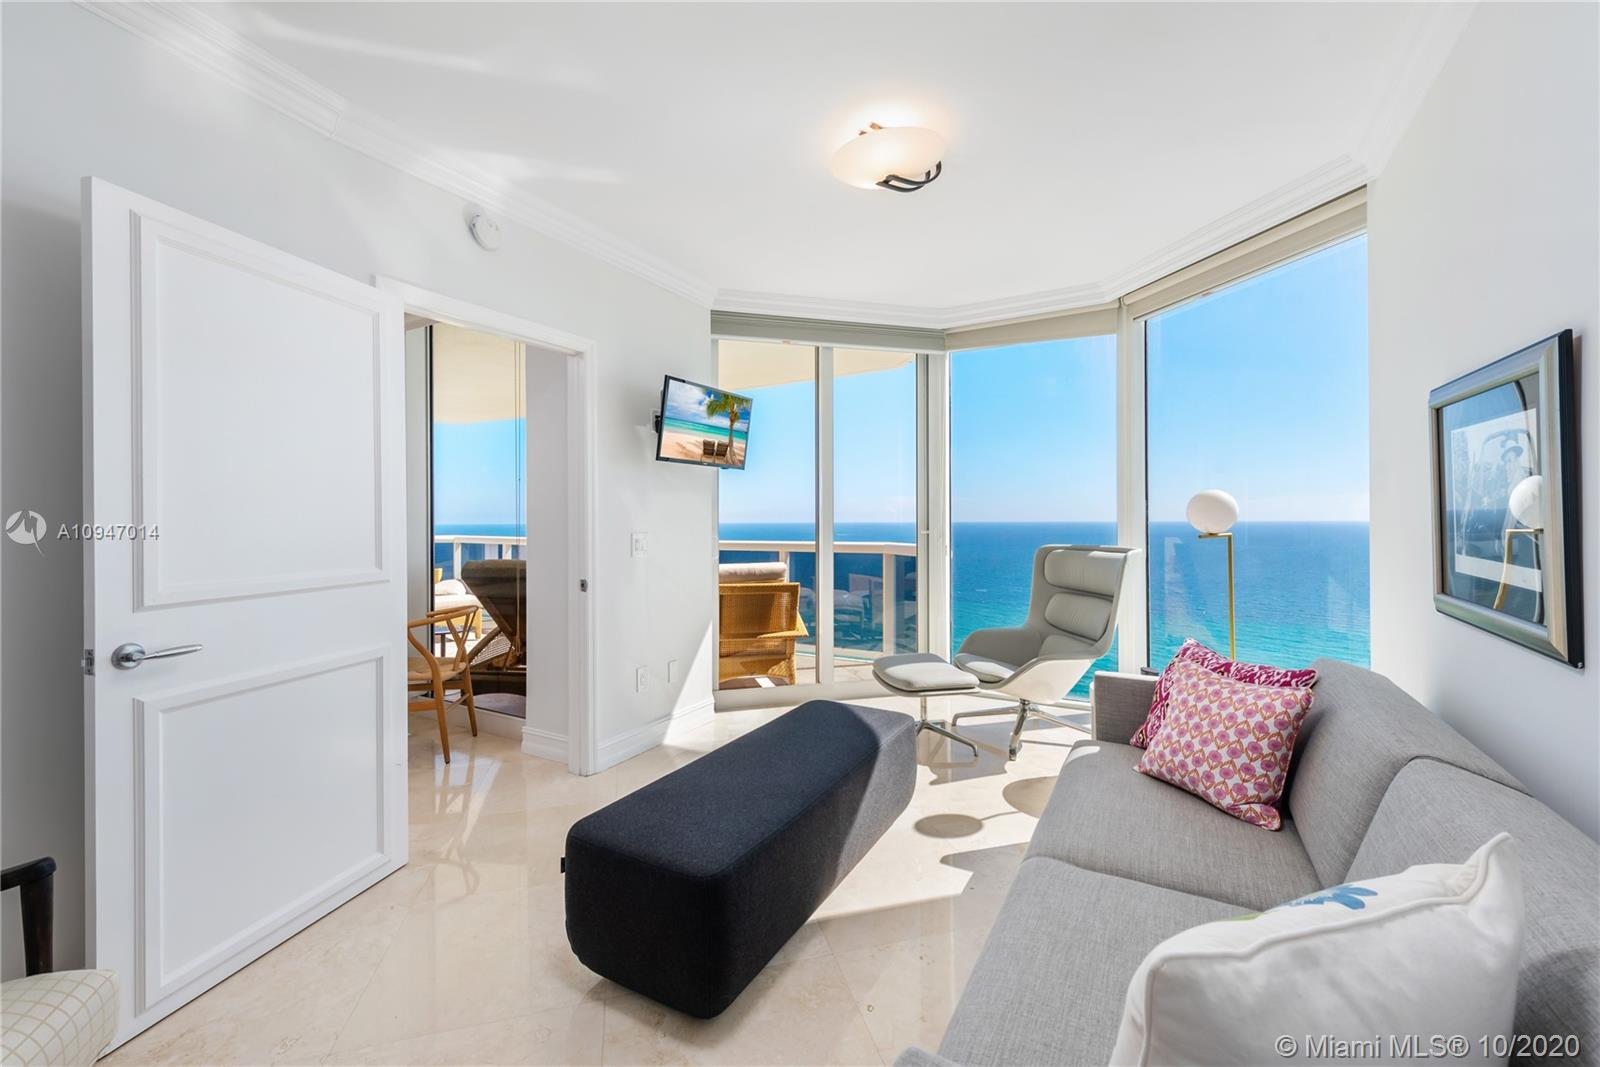 Enter through a double door & you are immediately greeted with stunning direct ocean views from this